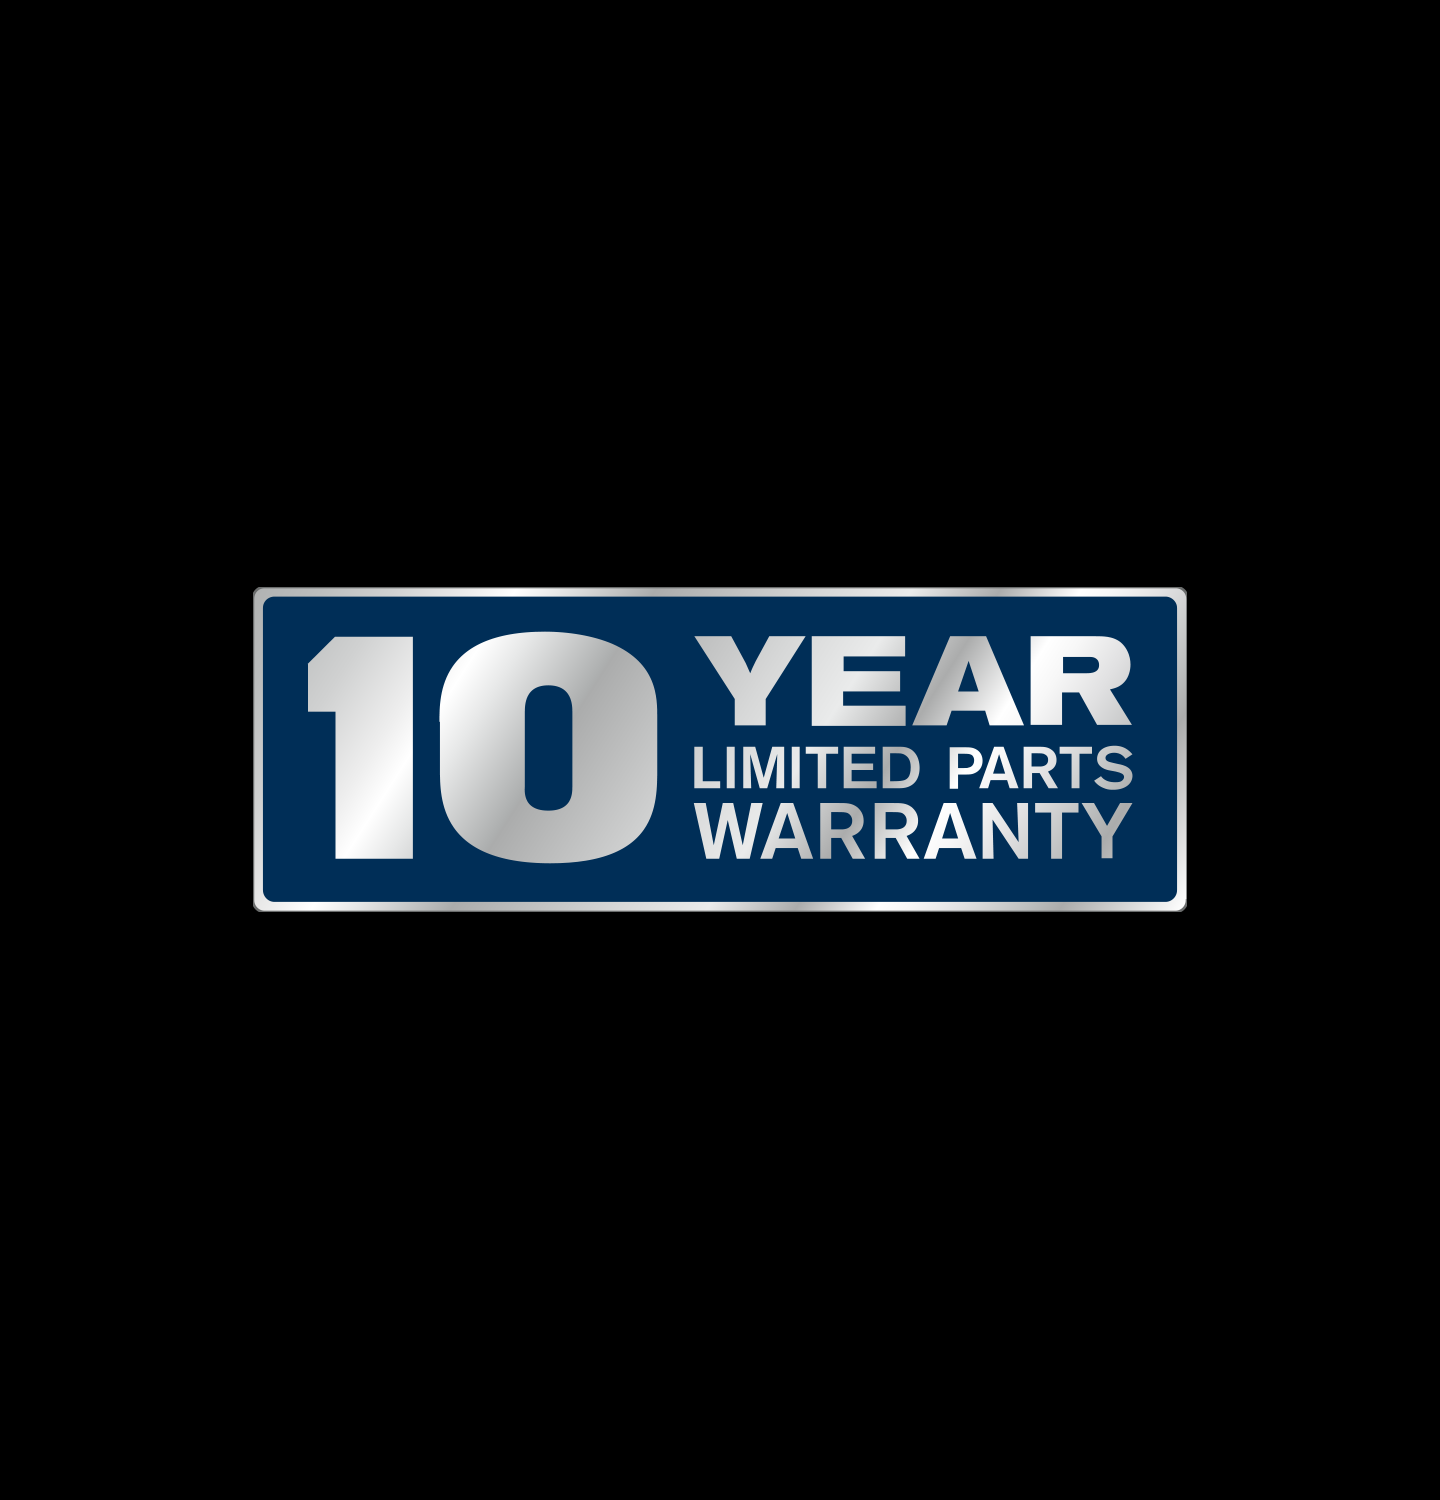 Dependable Kitchen Laundry Appliances Maytag Washer Wiring Diagram Further Washing Machine Control Circuit Our Come With A Reliable 10 Year Warranty